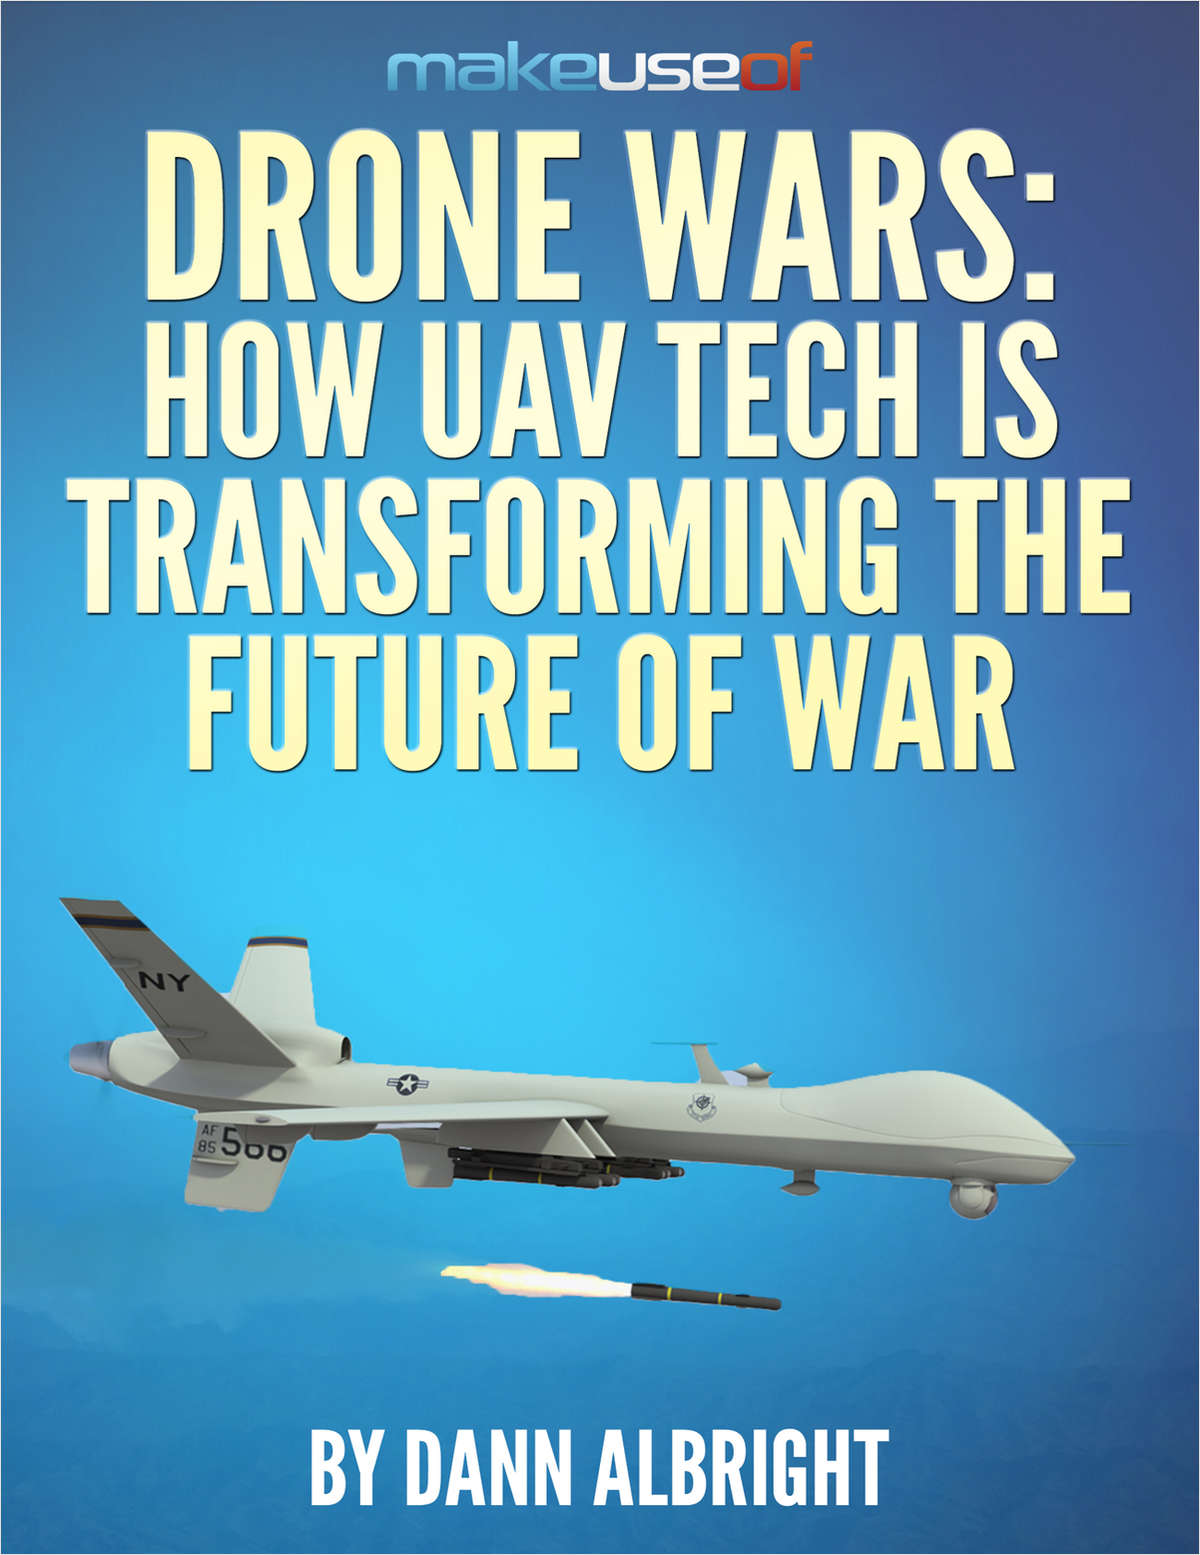 Drone Wars: How UAV Tech Is Transforming the Future of War